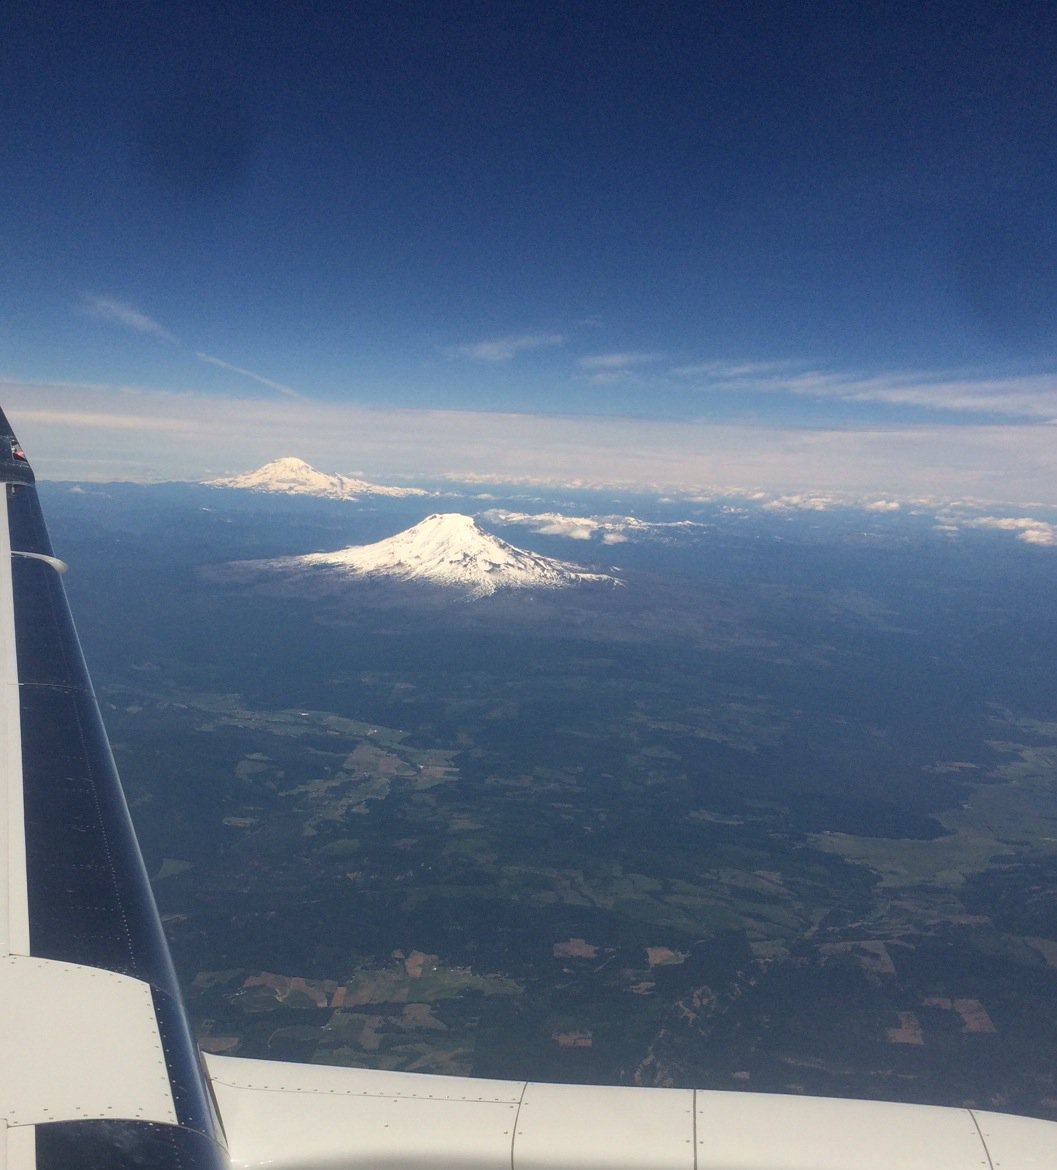 From Mount Rainer to #icar2017 Looking forward to some excellent science here @ICAR2017 https://t.co/9R8FPq9AcH